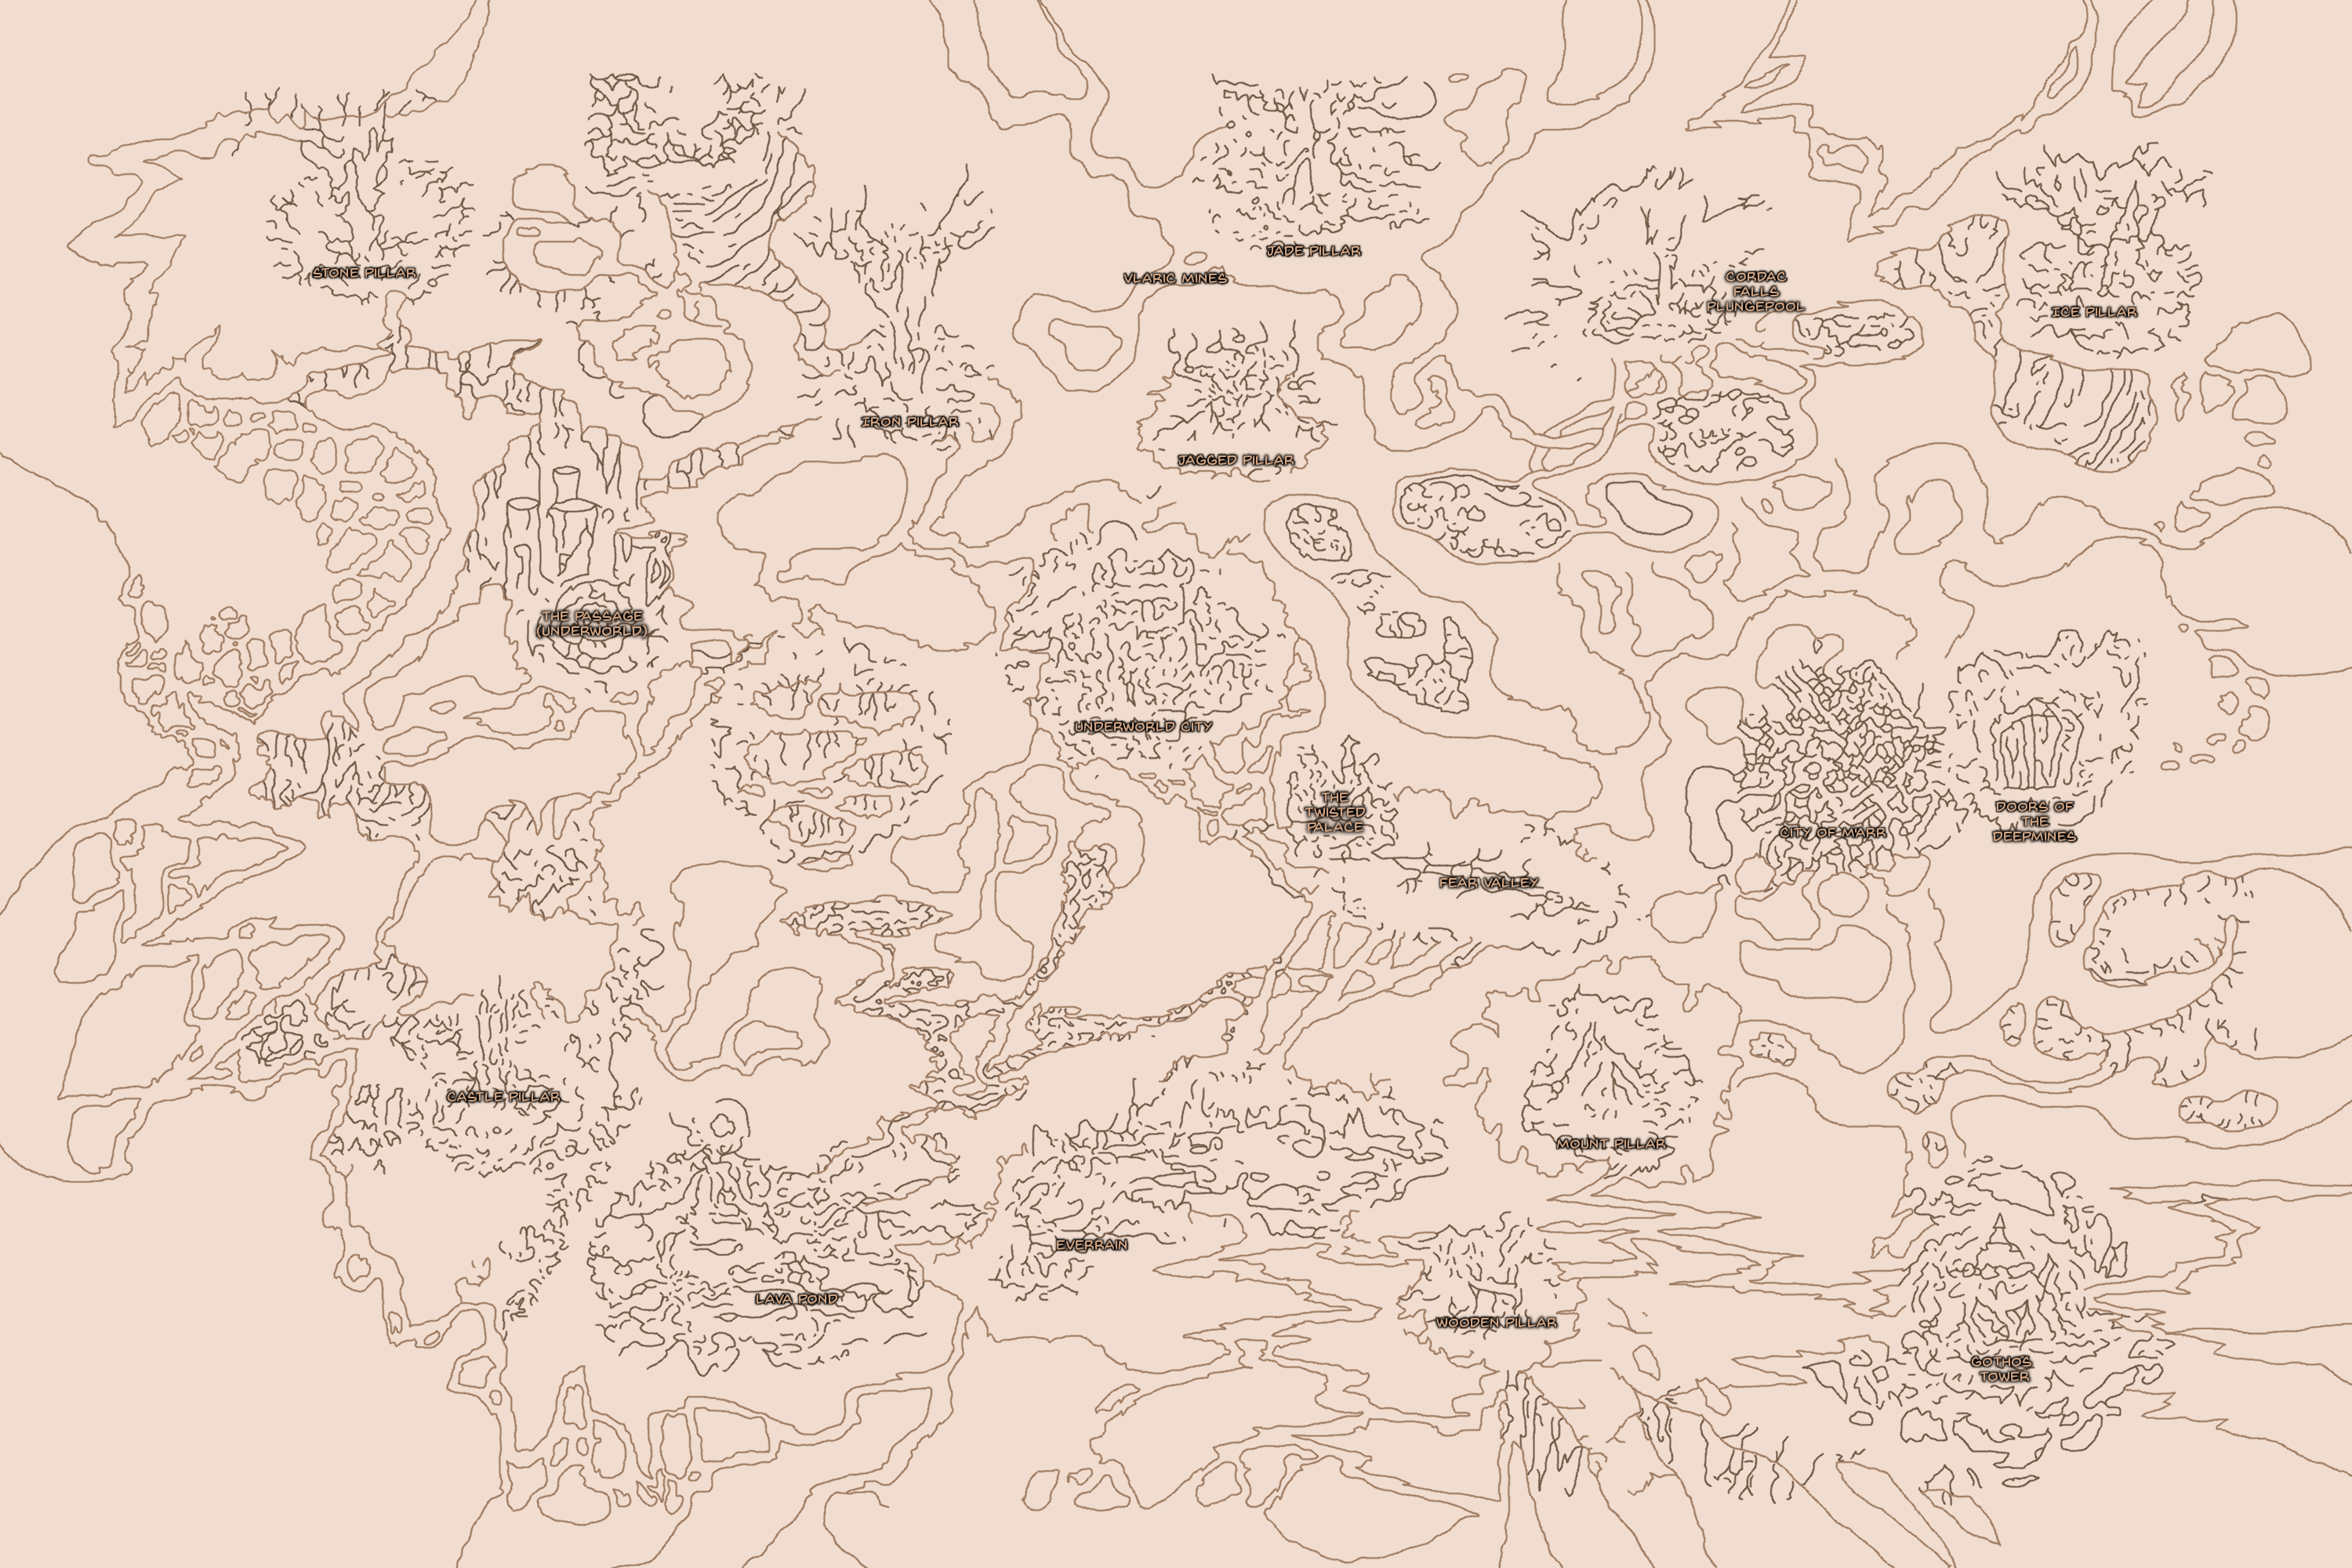 Is there a map of Perim? UnderWorld_map_WIP